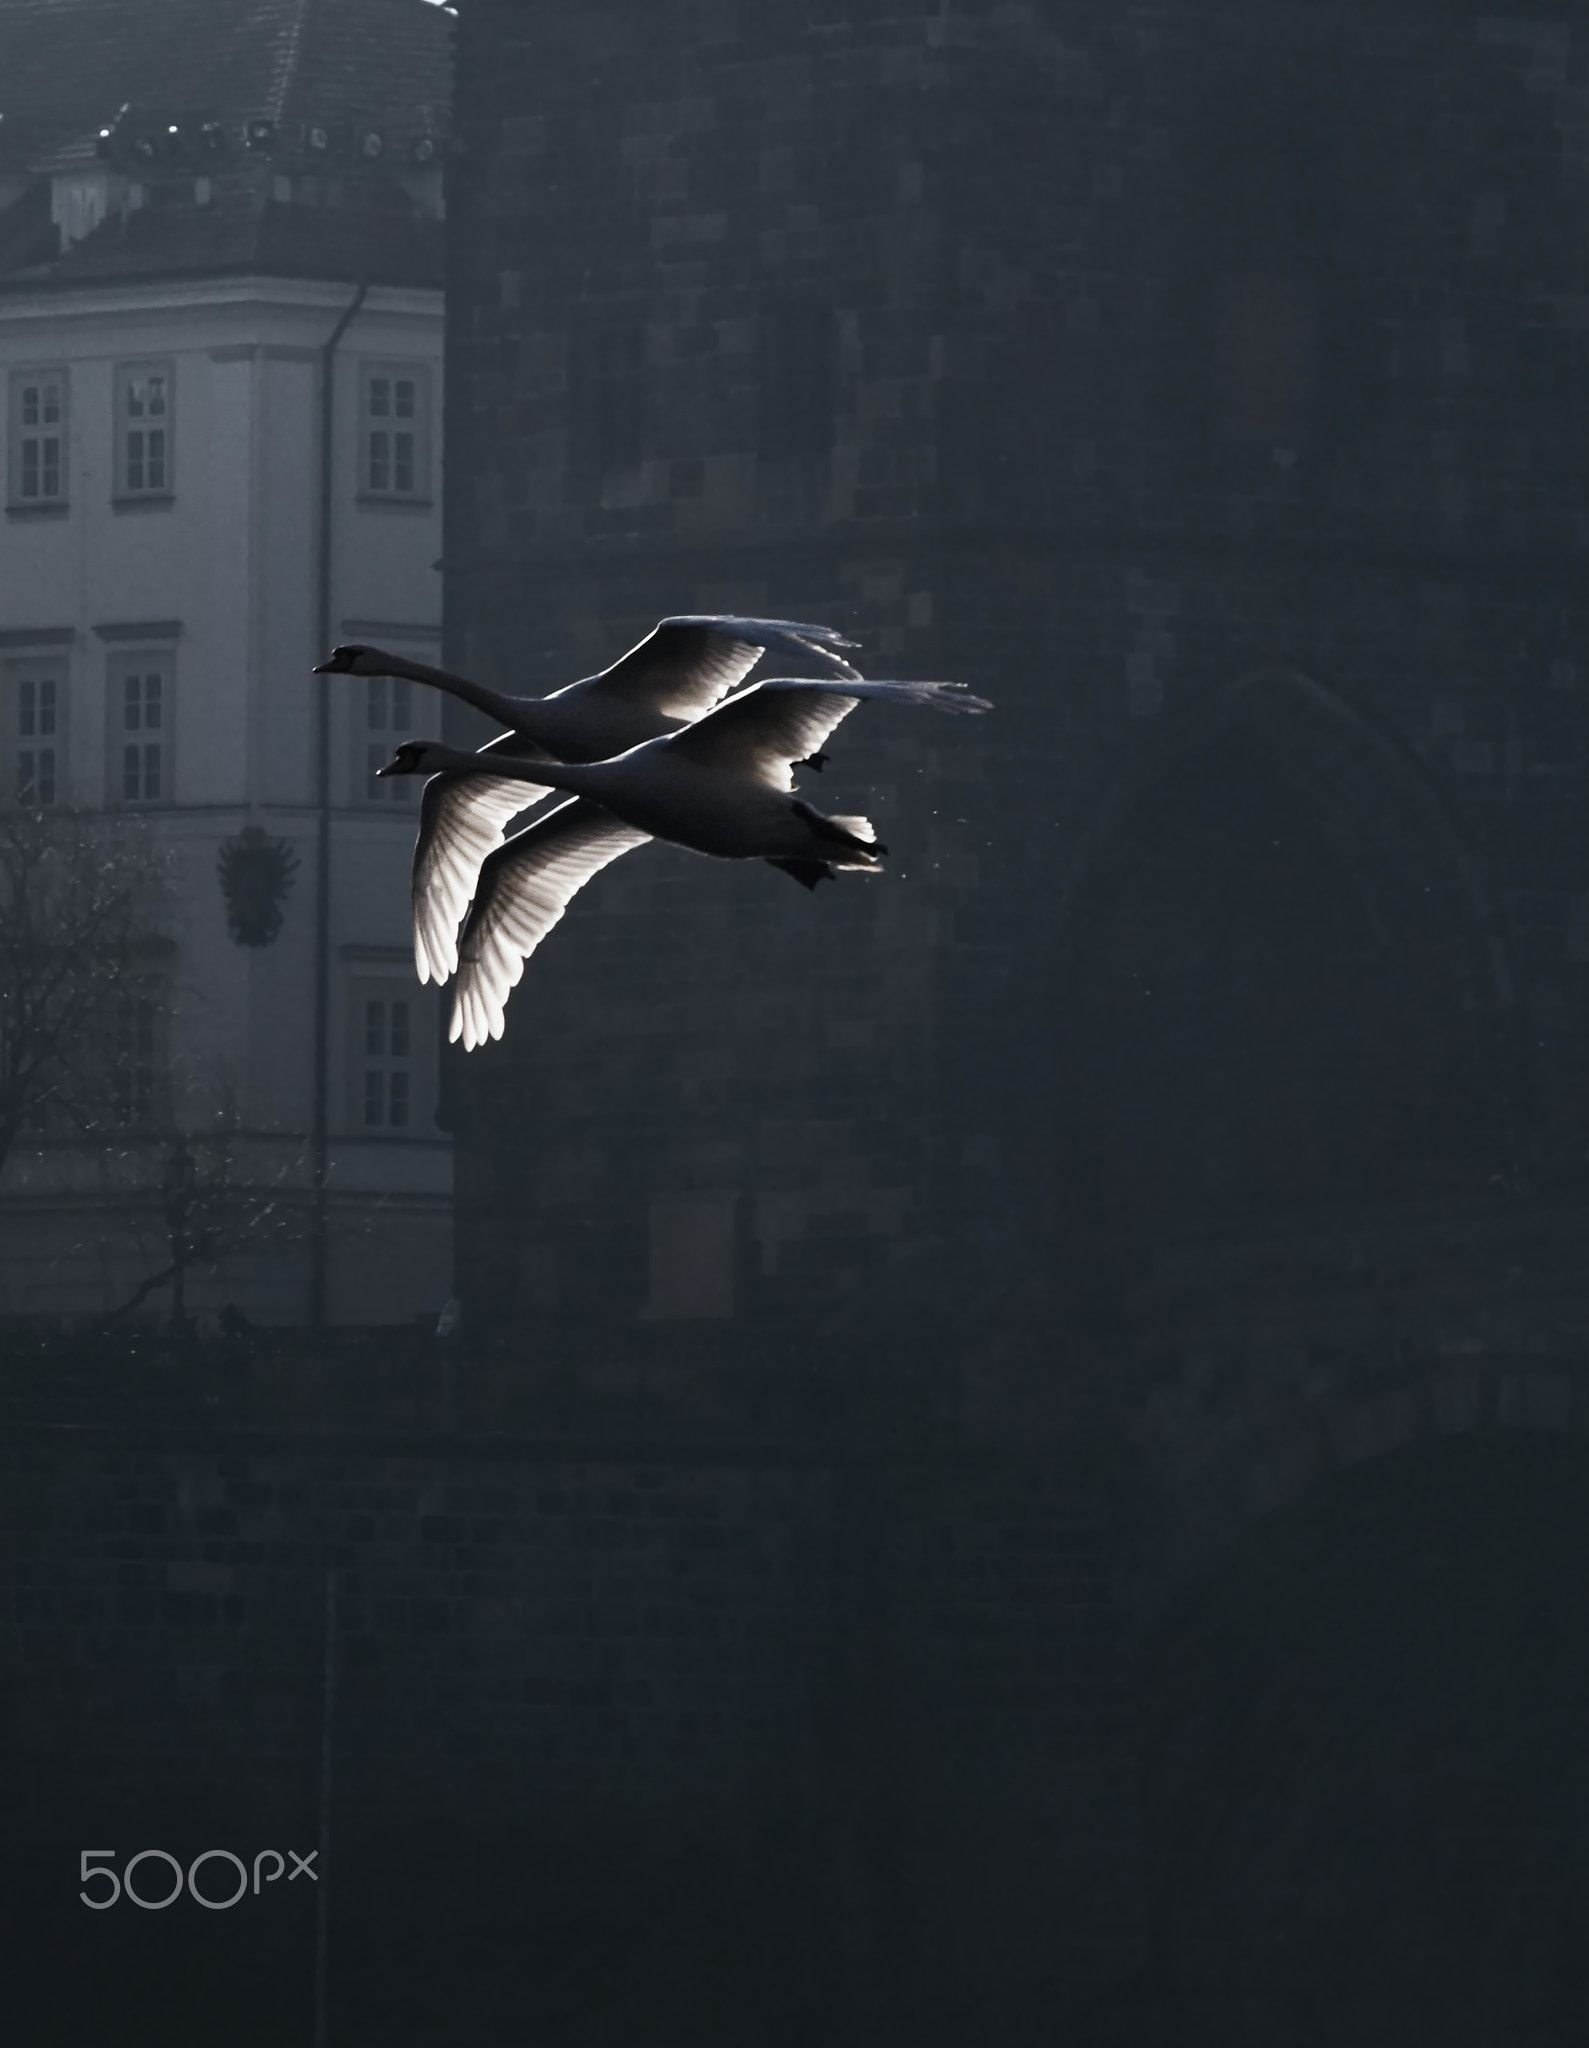 Early Spring on Vltava river in Prague - Two swans is flying over the Vltava River in Prague early morning. Charles bridge and Mostecka Tower is in the background .